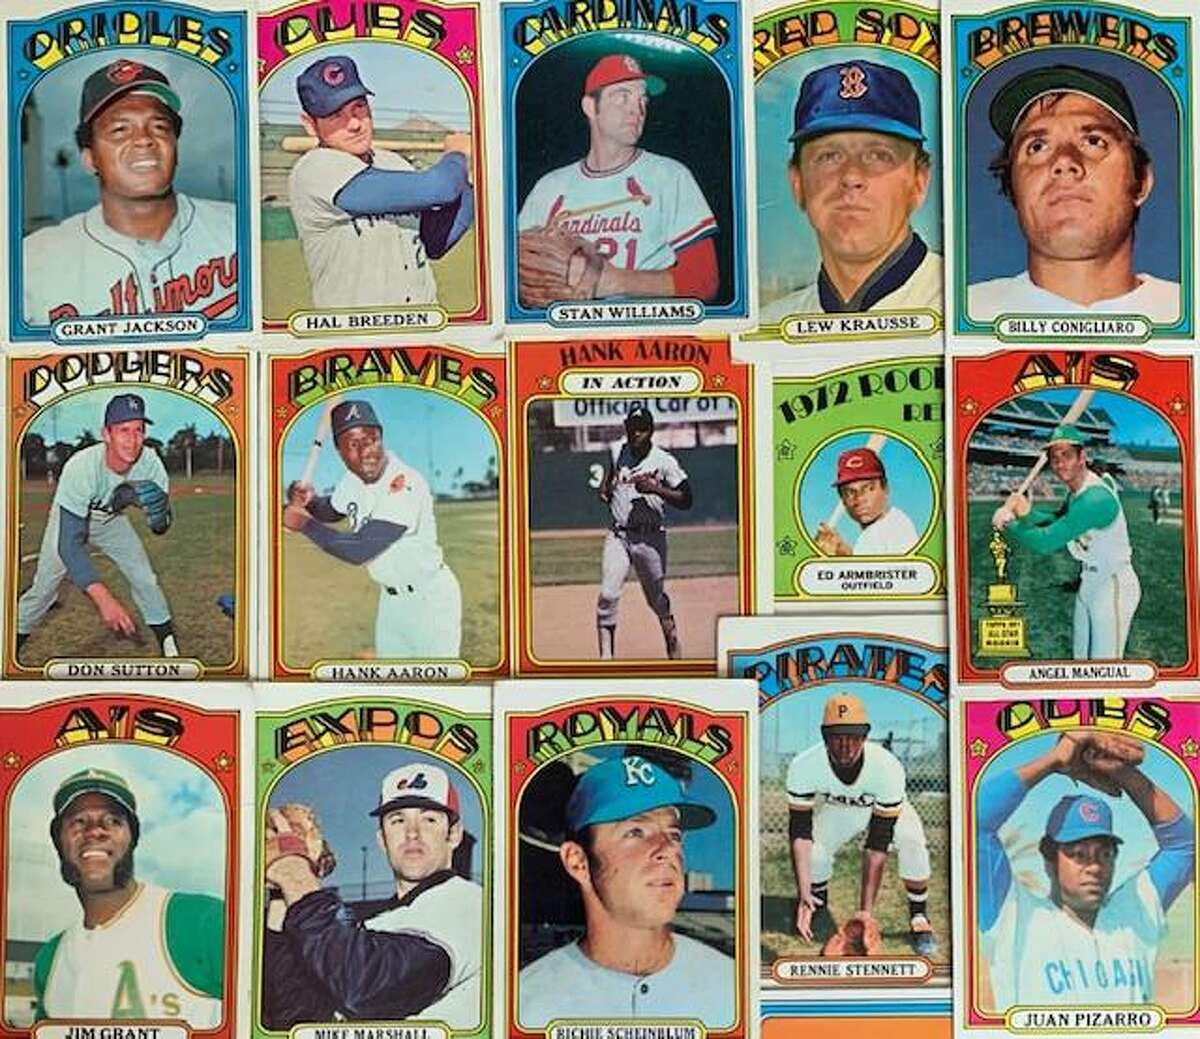 Through mid-July, 15 players from the 1972 Topps baseball card set had died in 2021. Not pictured is Dick Tidrow, who passed on July 10.